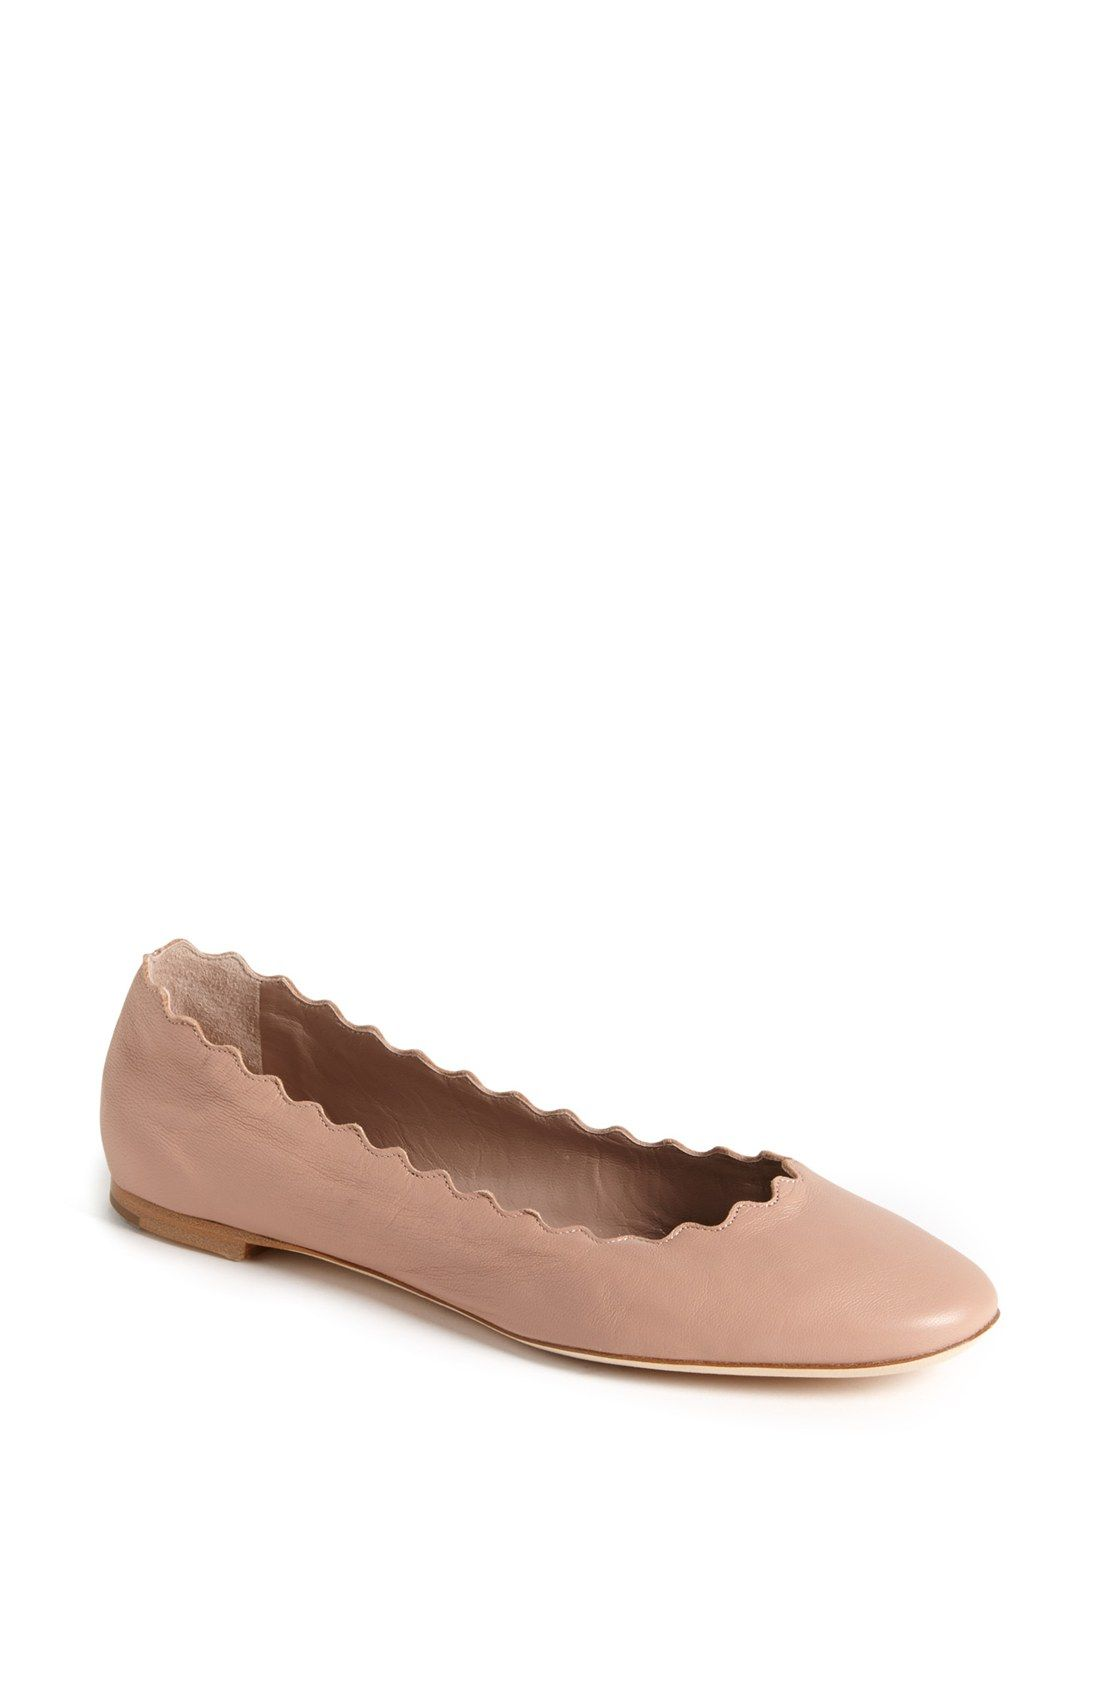 Chloé Women's Scalloped Ballet Flat